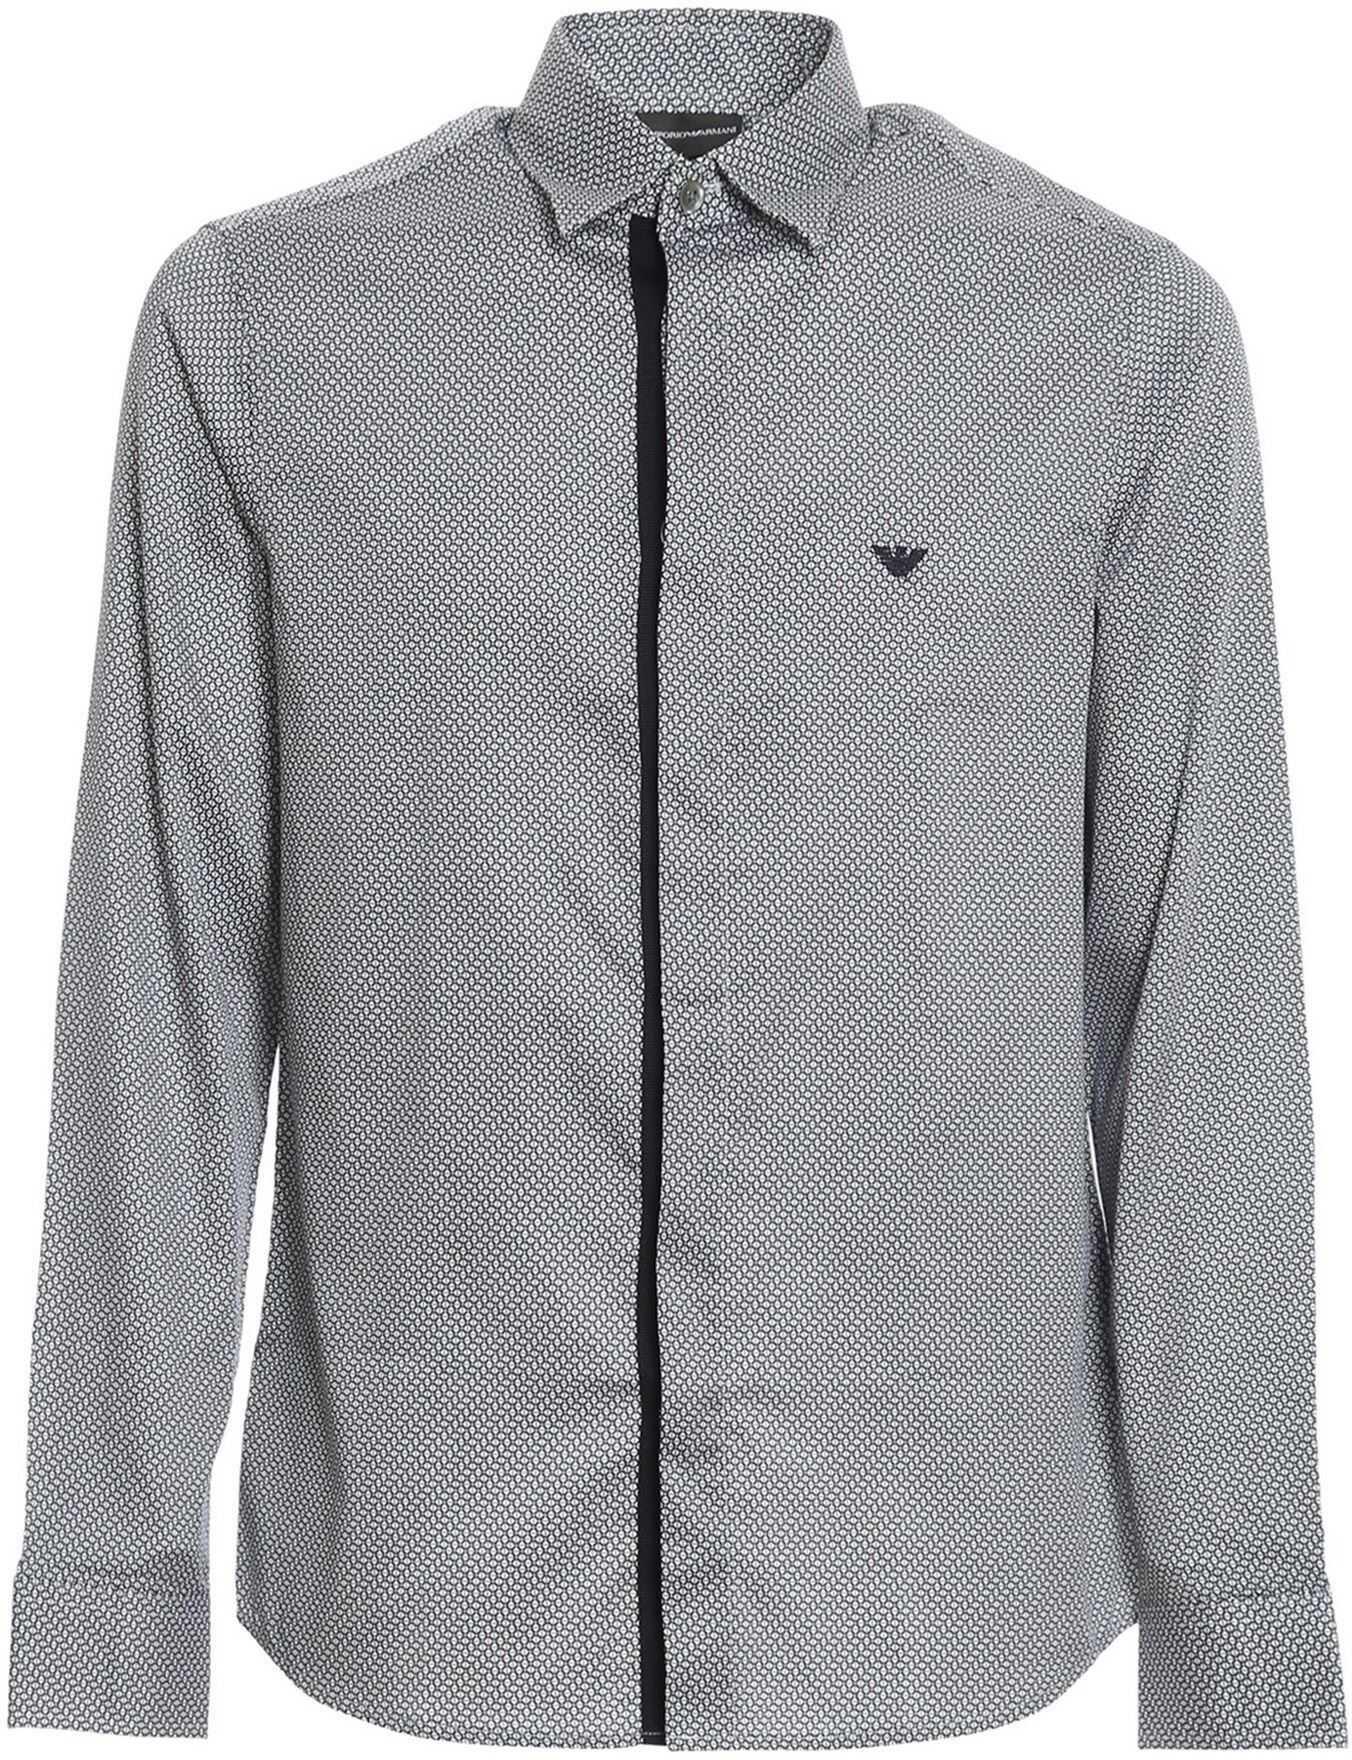 Emporio Armani Stretch Cotton Patterned Shirt In Grey Blue imagine